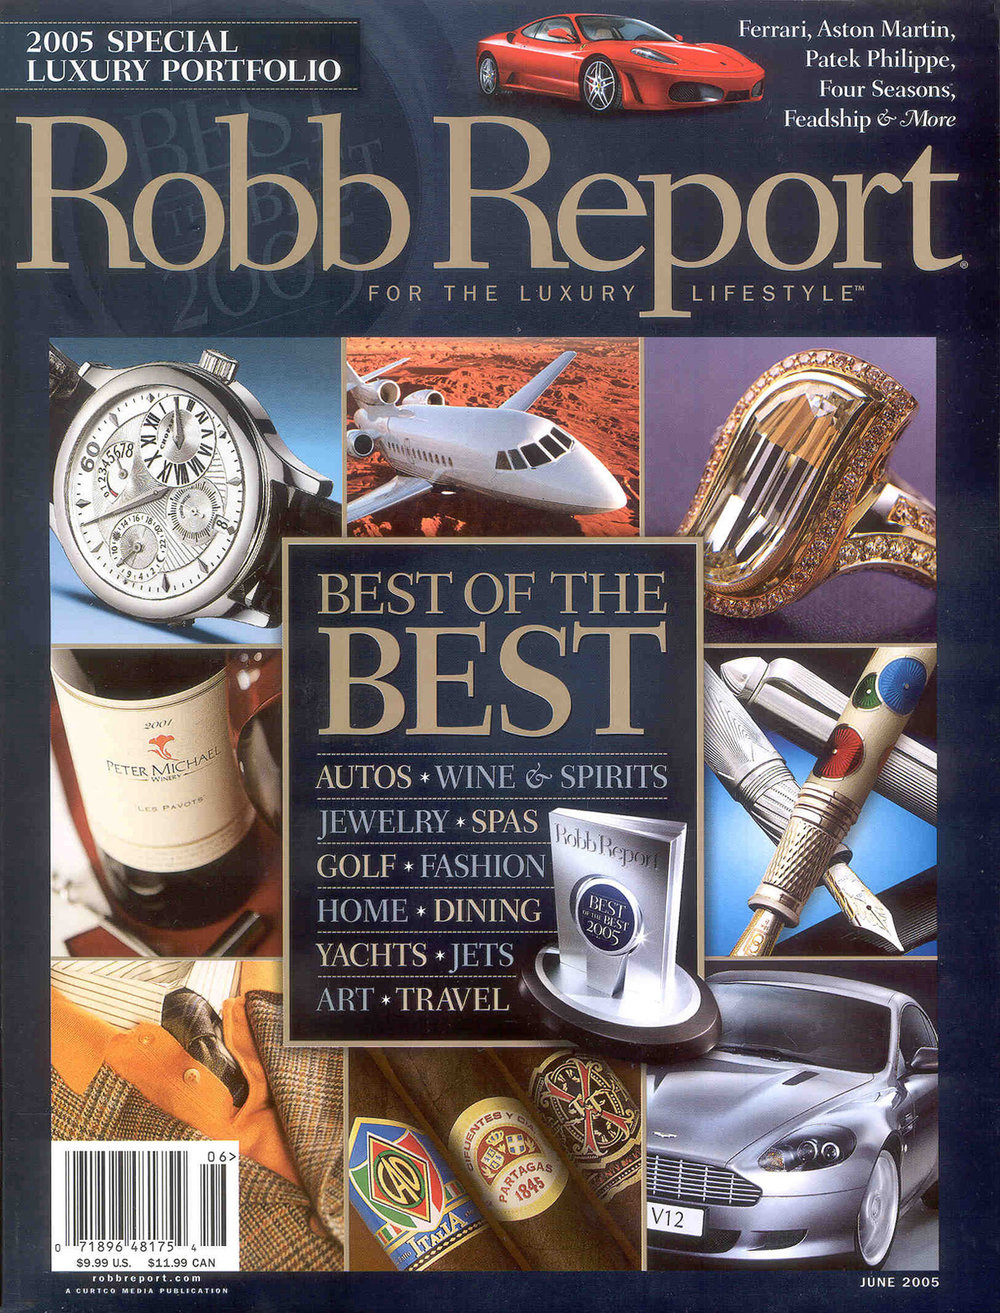 ROBB REPORT - BEST OF THE BEST LANDSCAPE ARCHITECTS